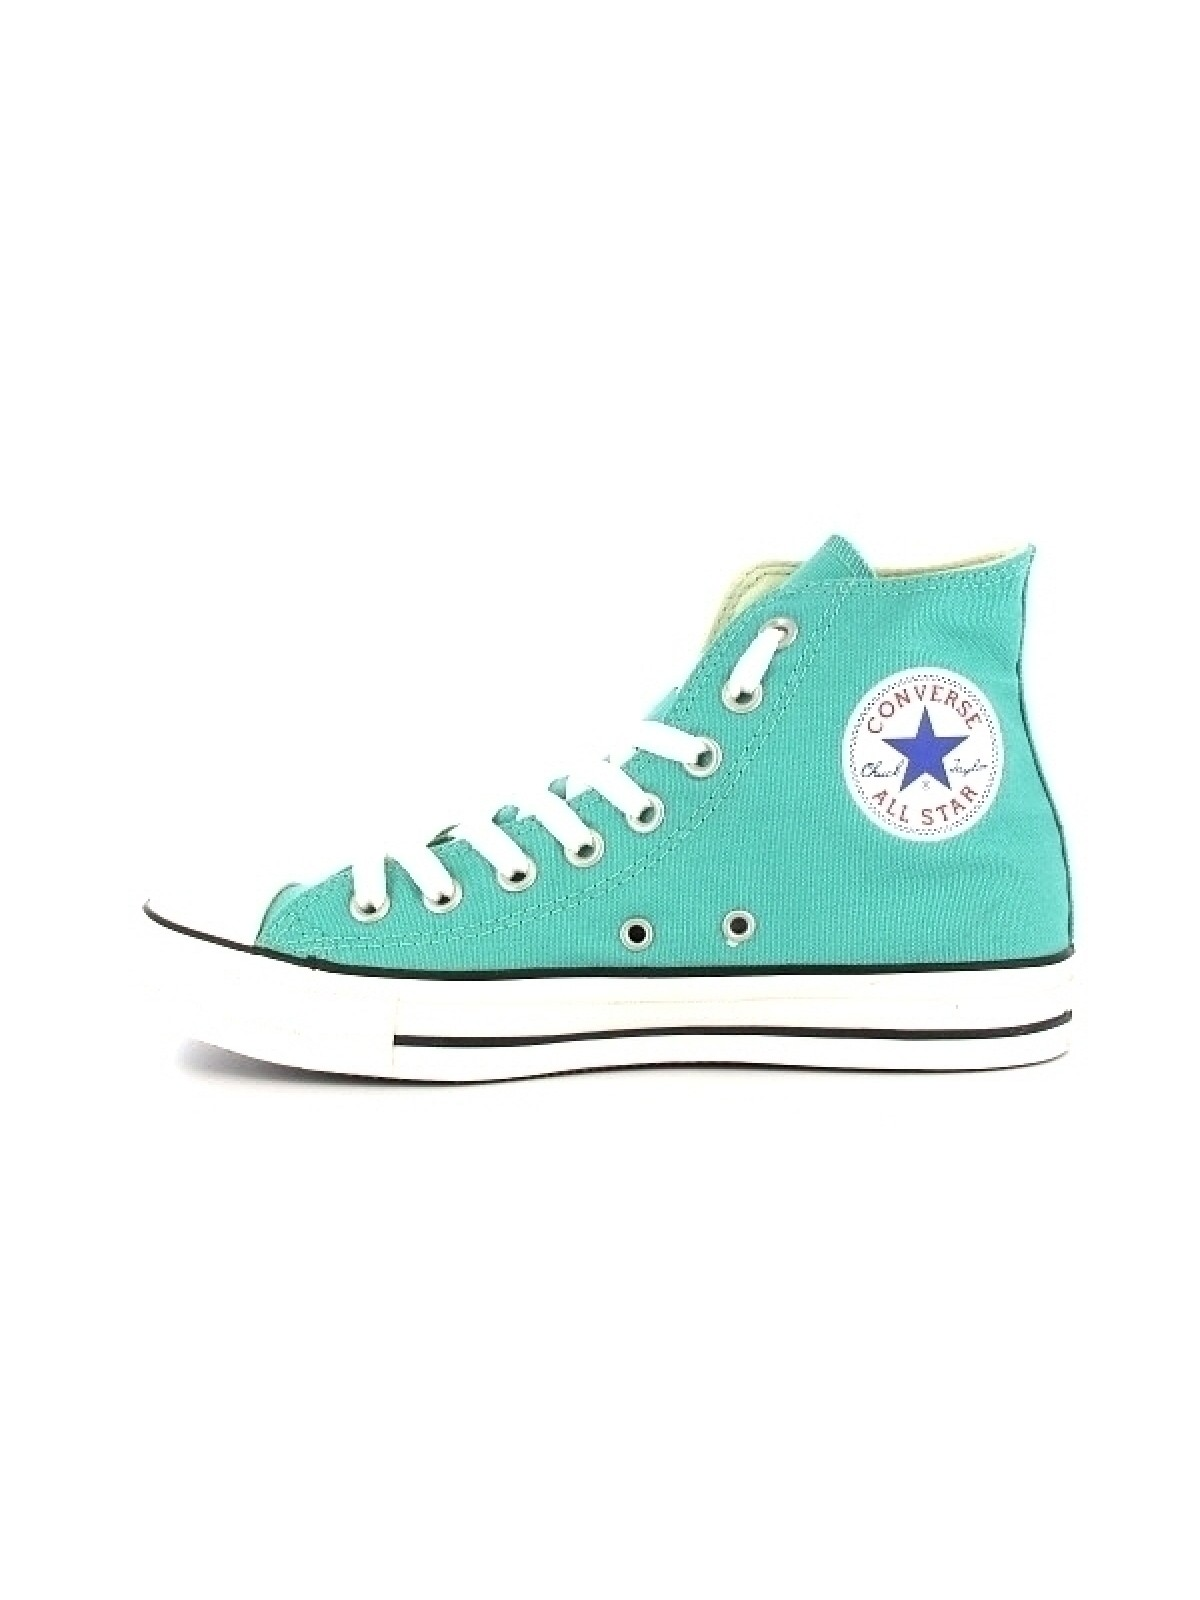 Converse Chuck Taylor all star toile vert / turquoise